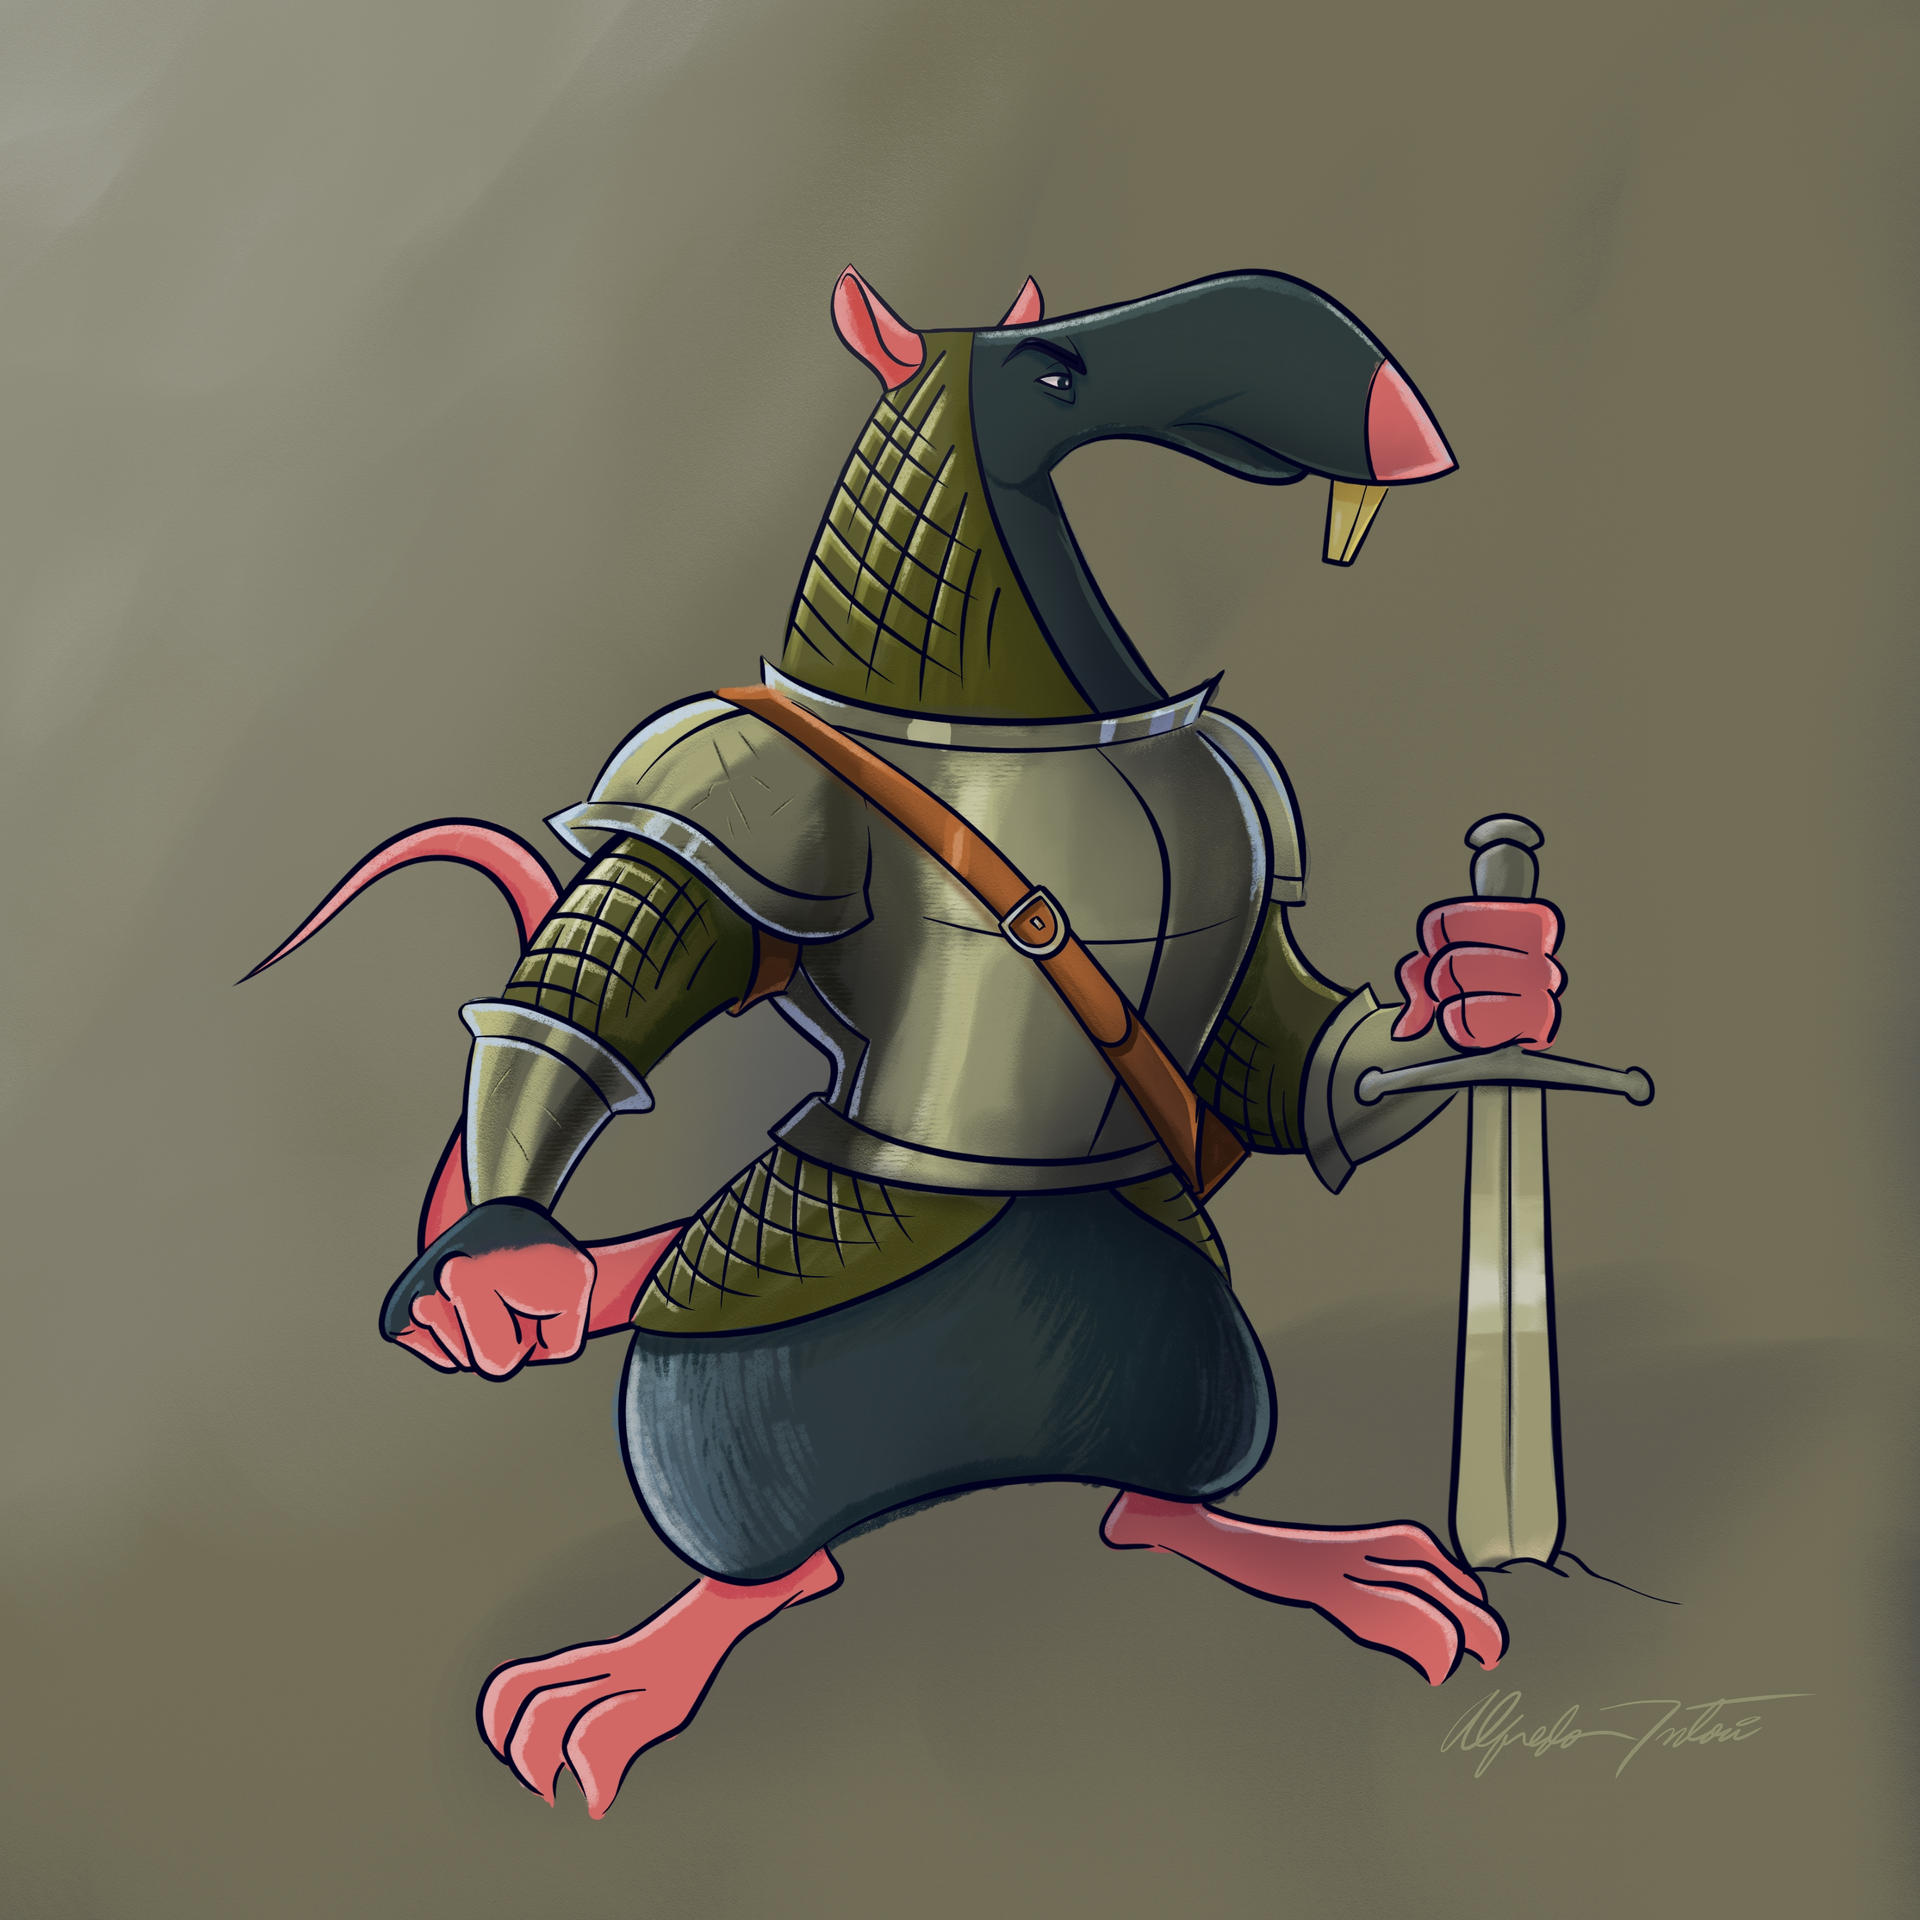 Knight rat concept by intocidraw